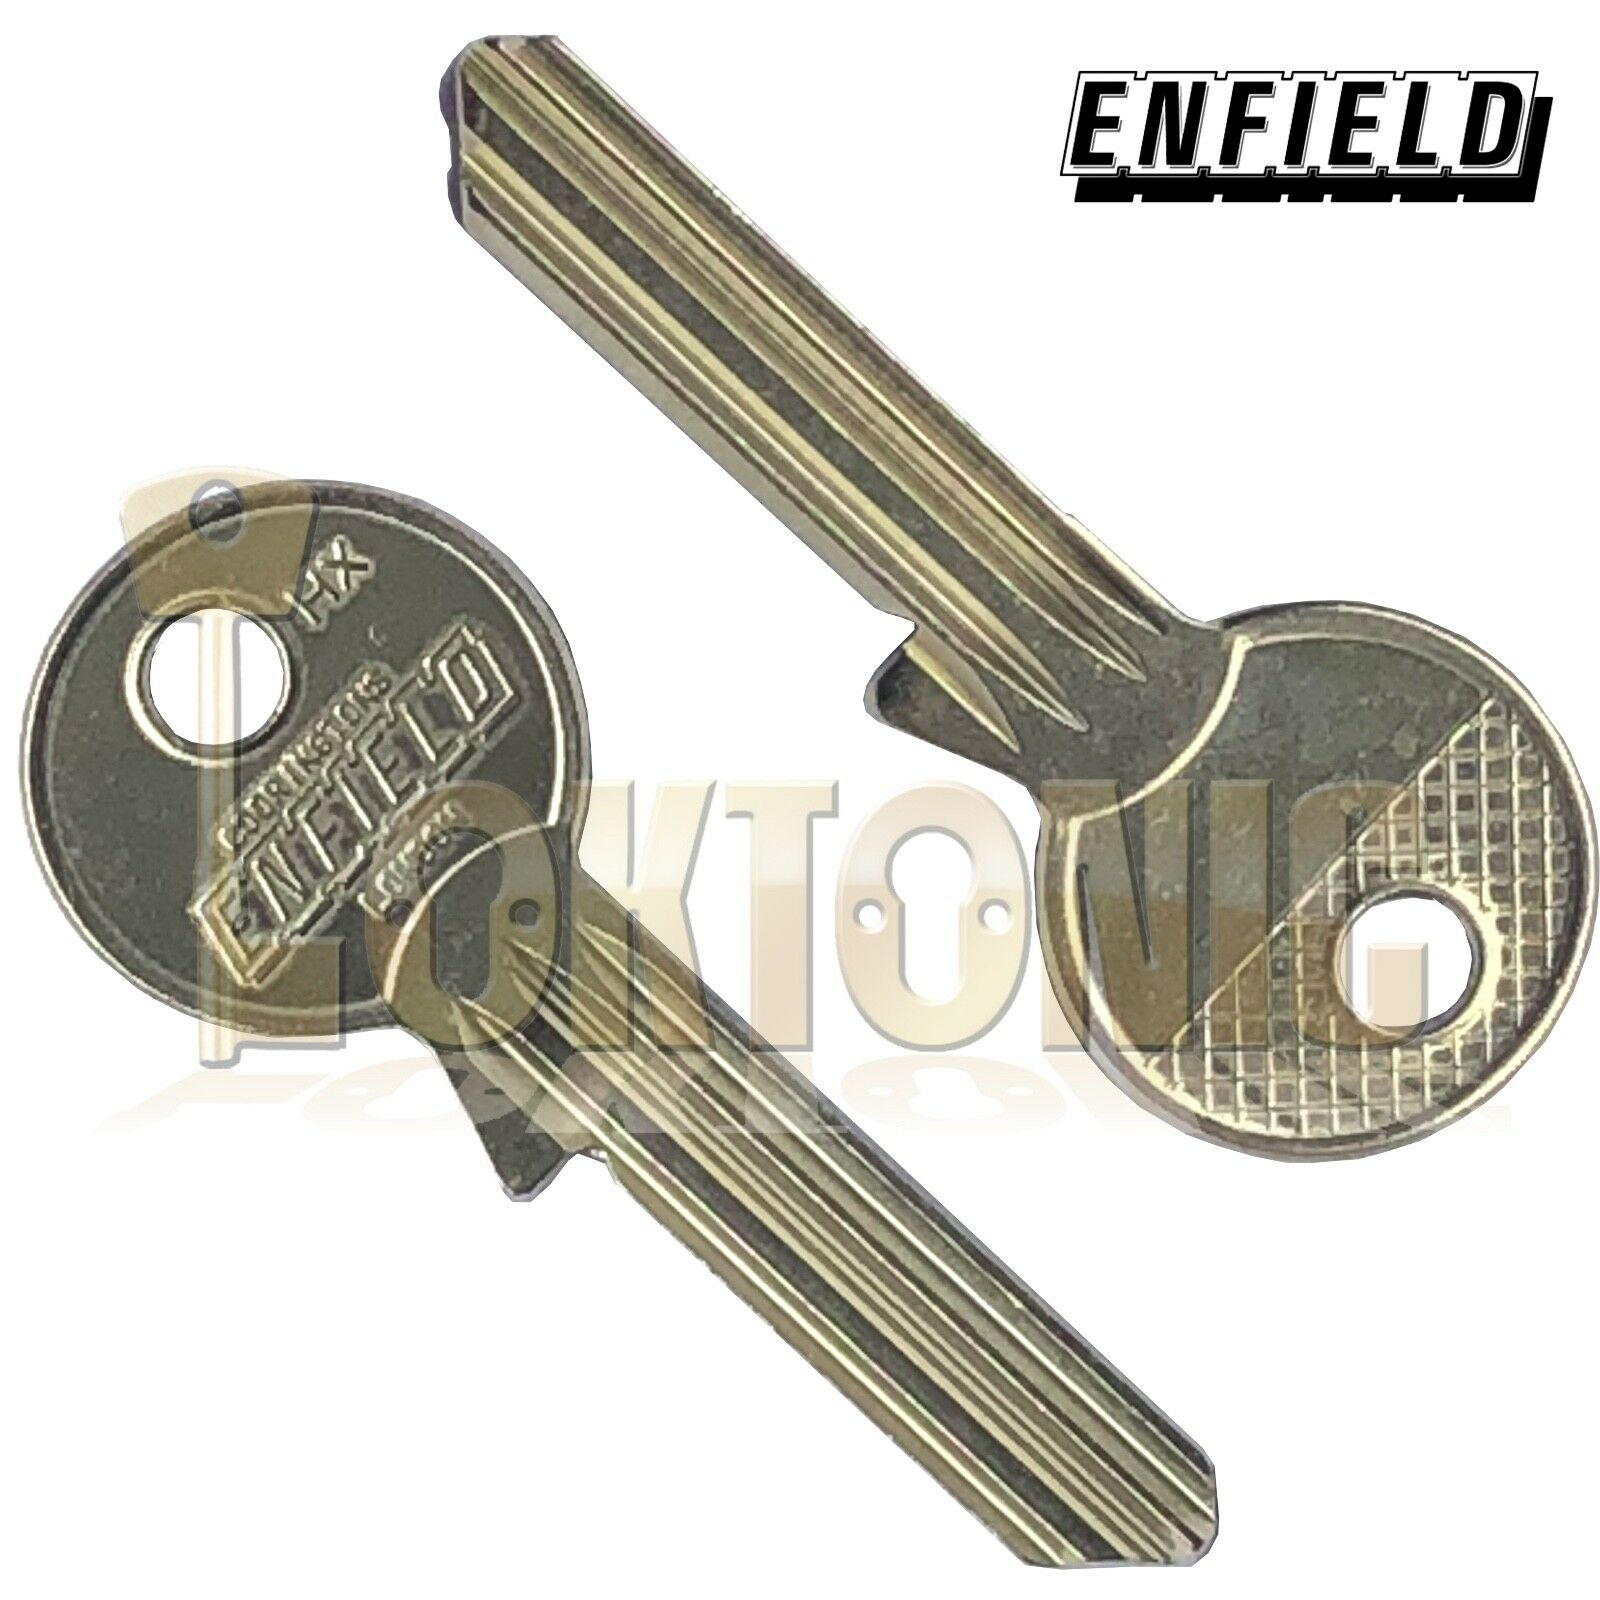 Enfield Genuine HXKB6 Key Blanks To Fit Any 6 Pin Enfield Cylinder